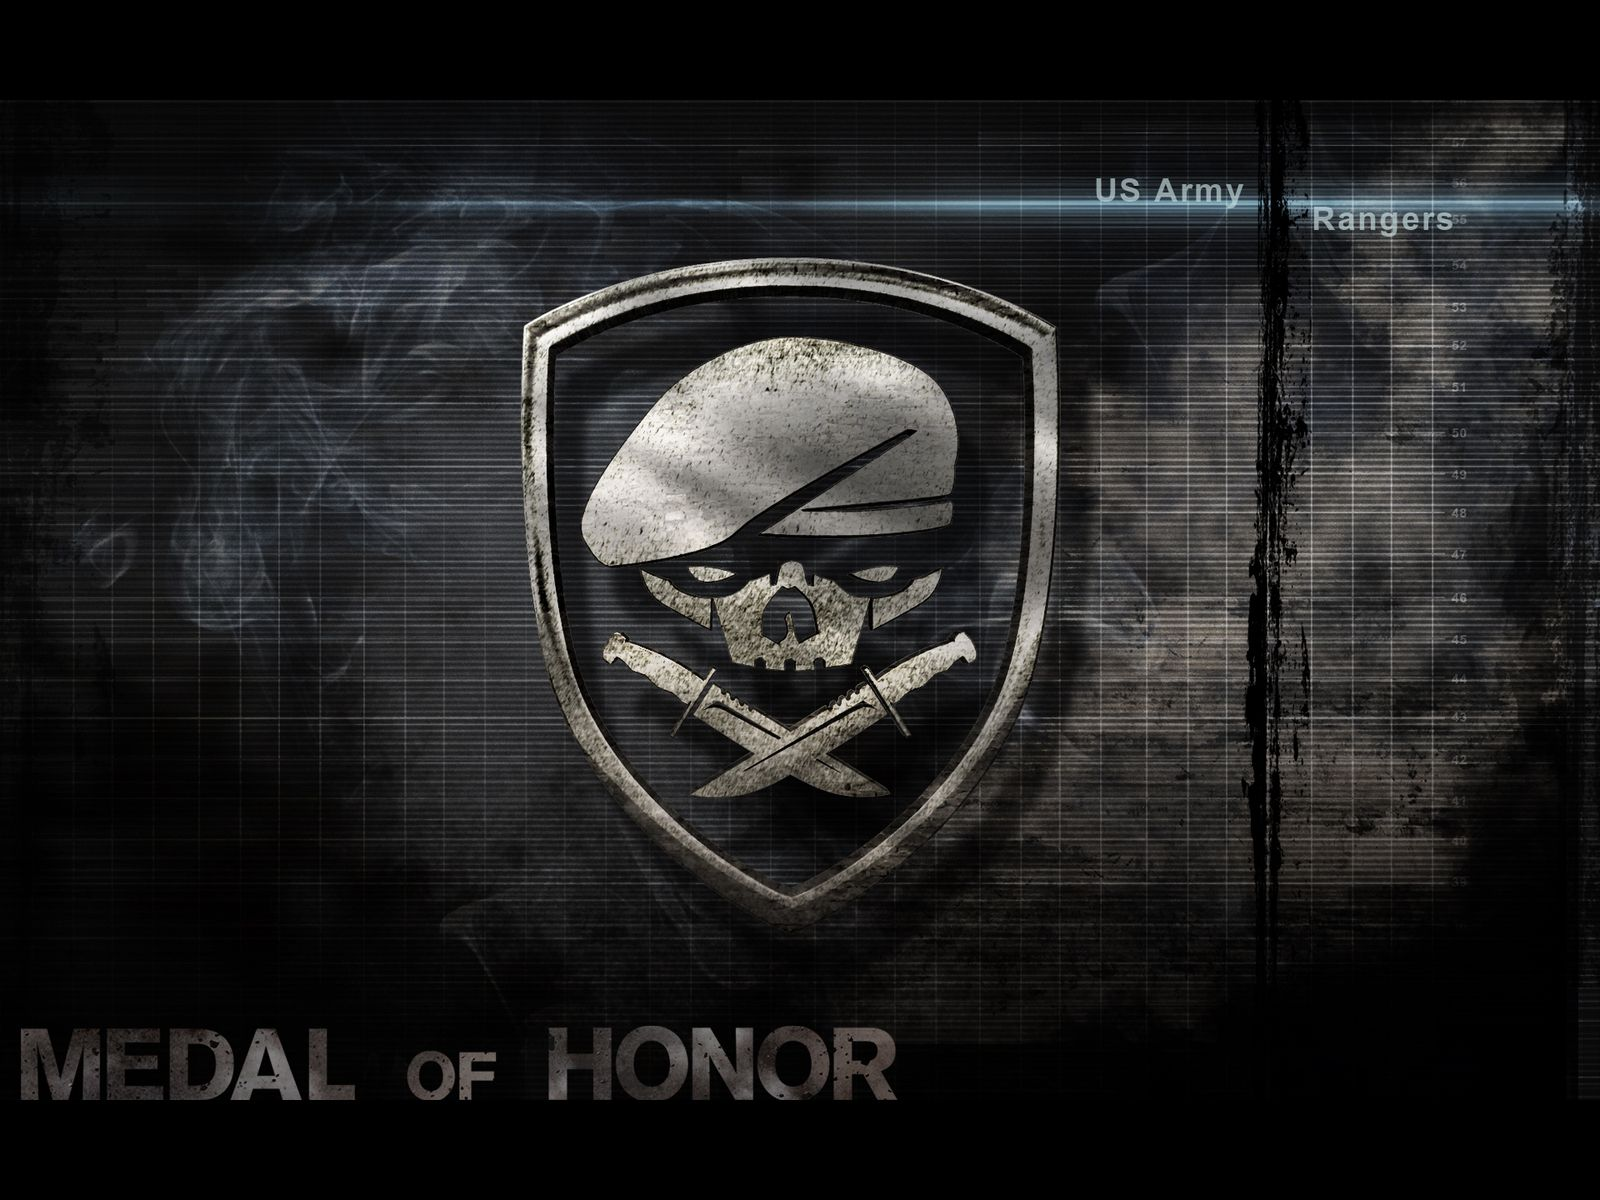 Army Rangers Wallpaper: Us Army Rangers Medal Of Honor Wallpaper